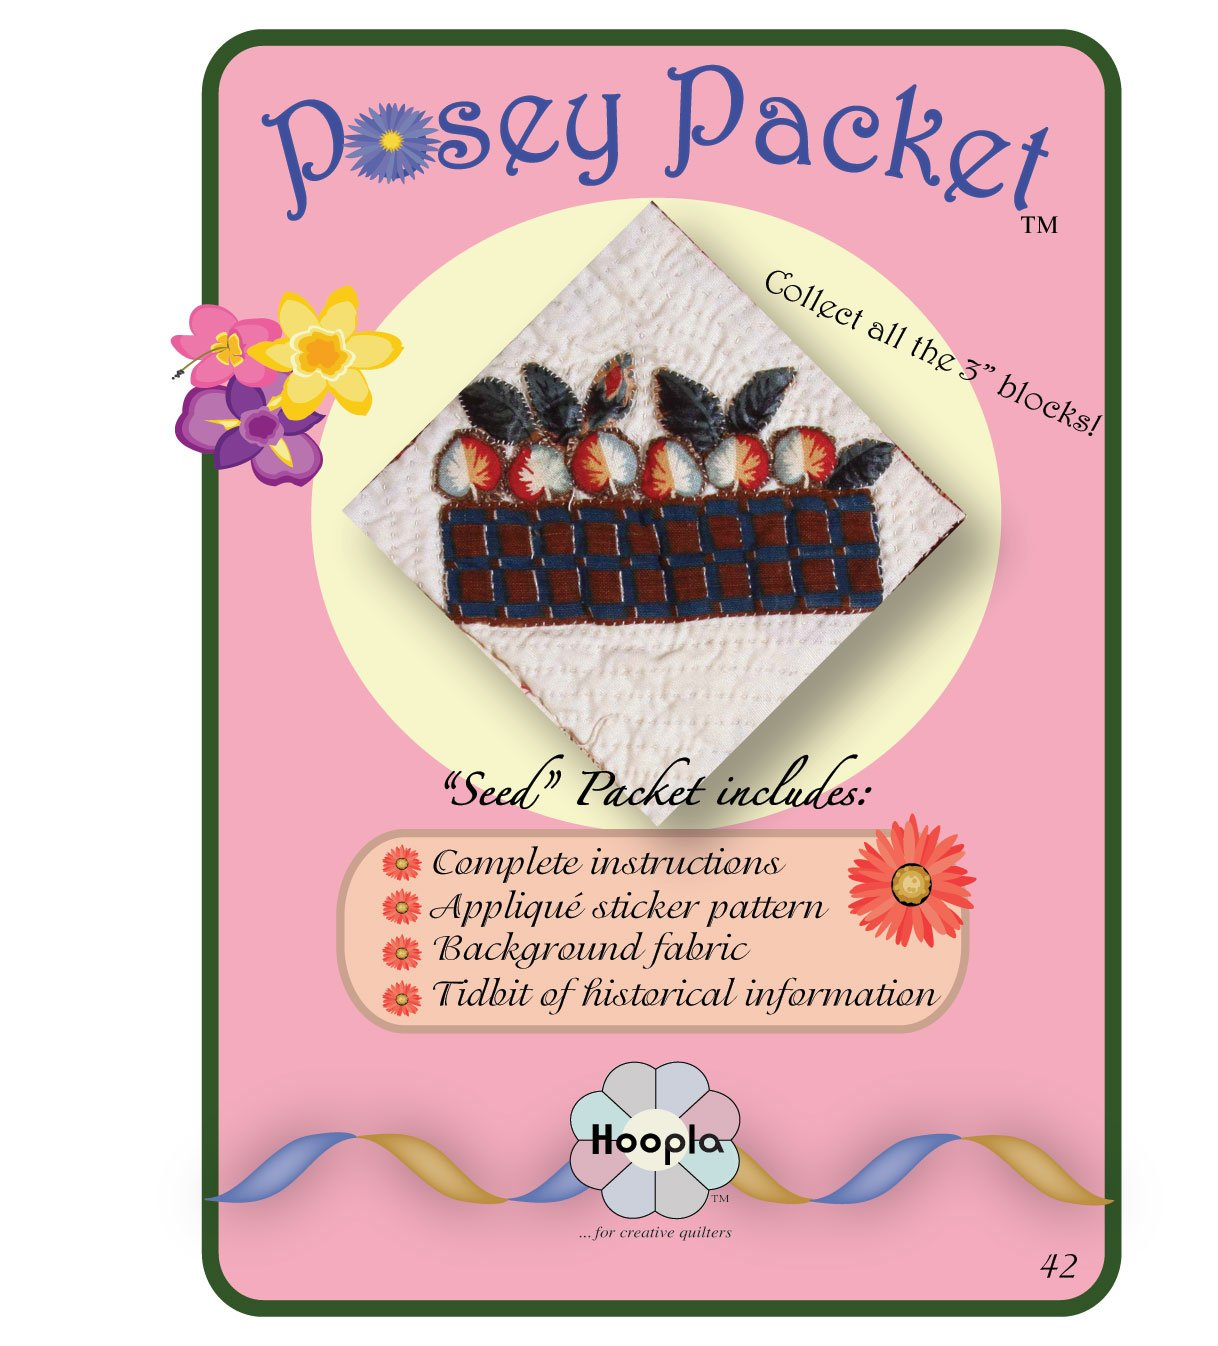 Posey Packet 42